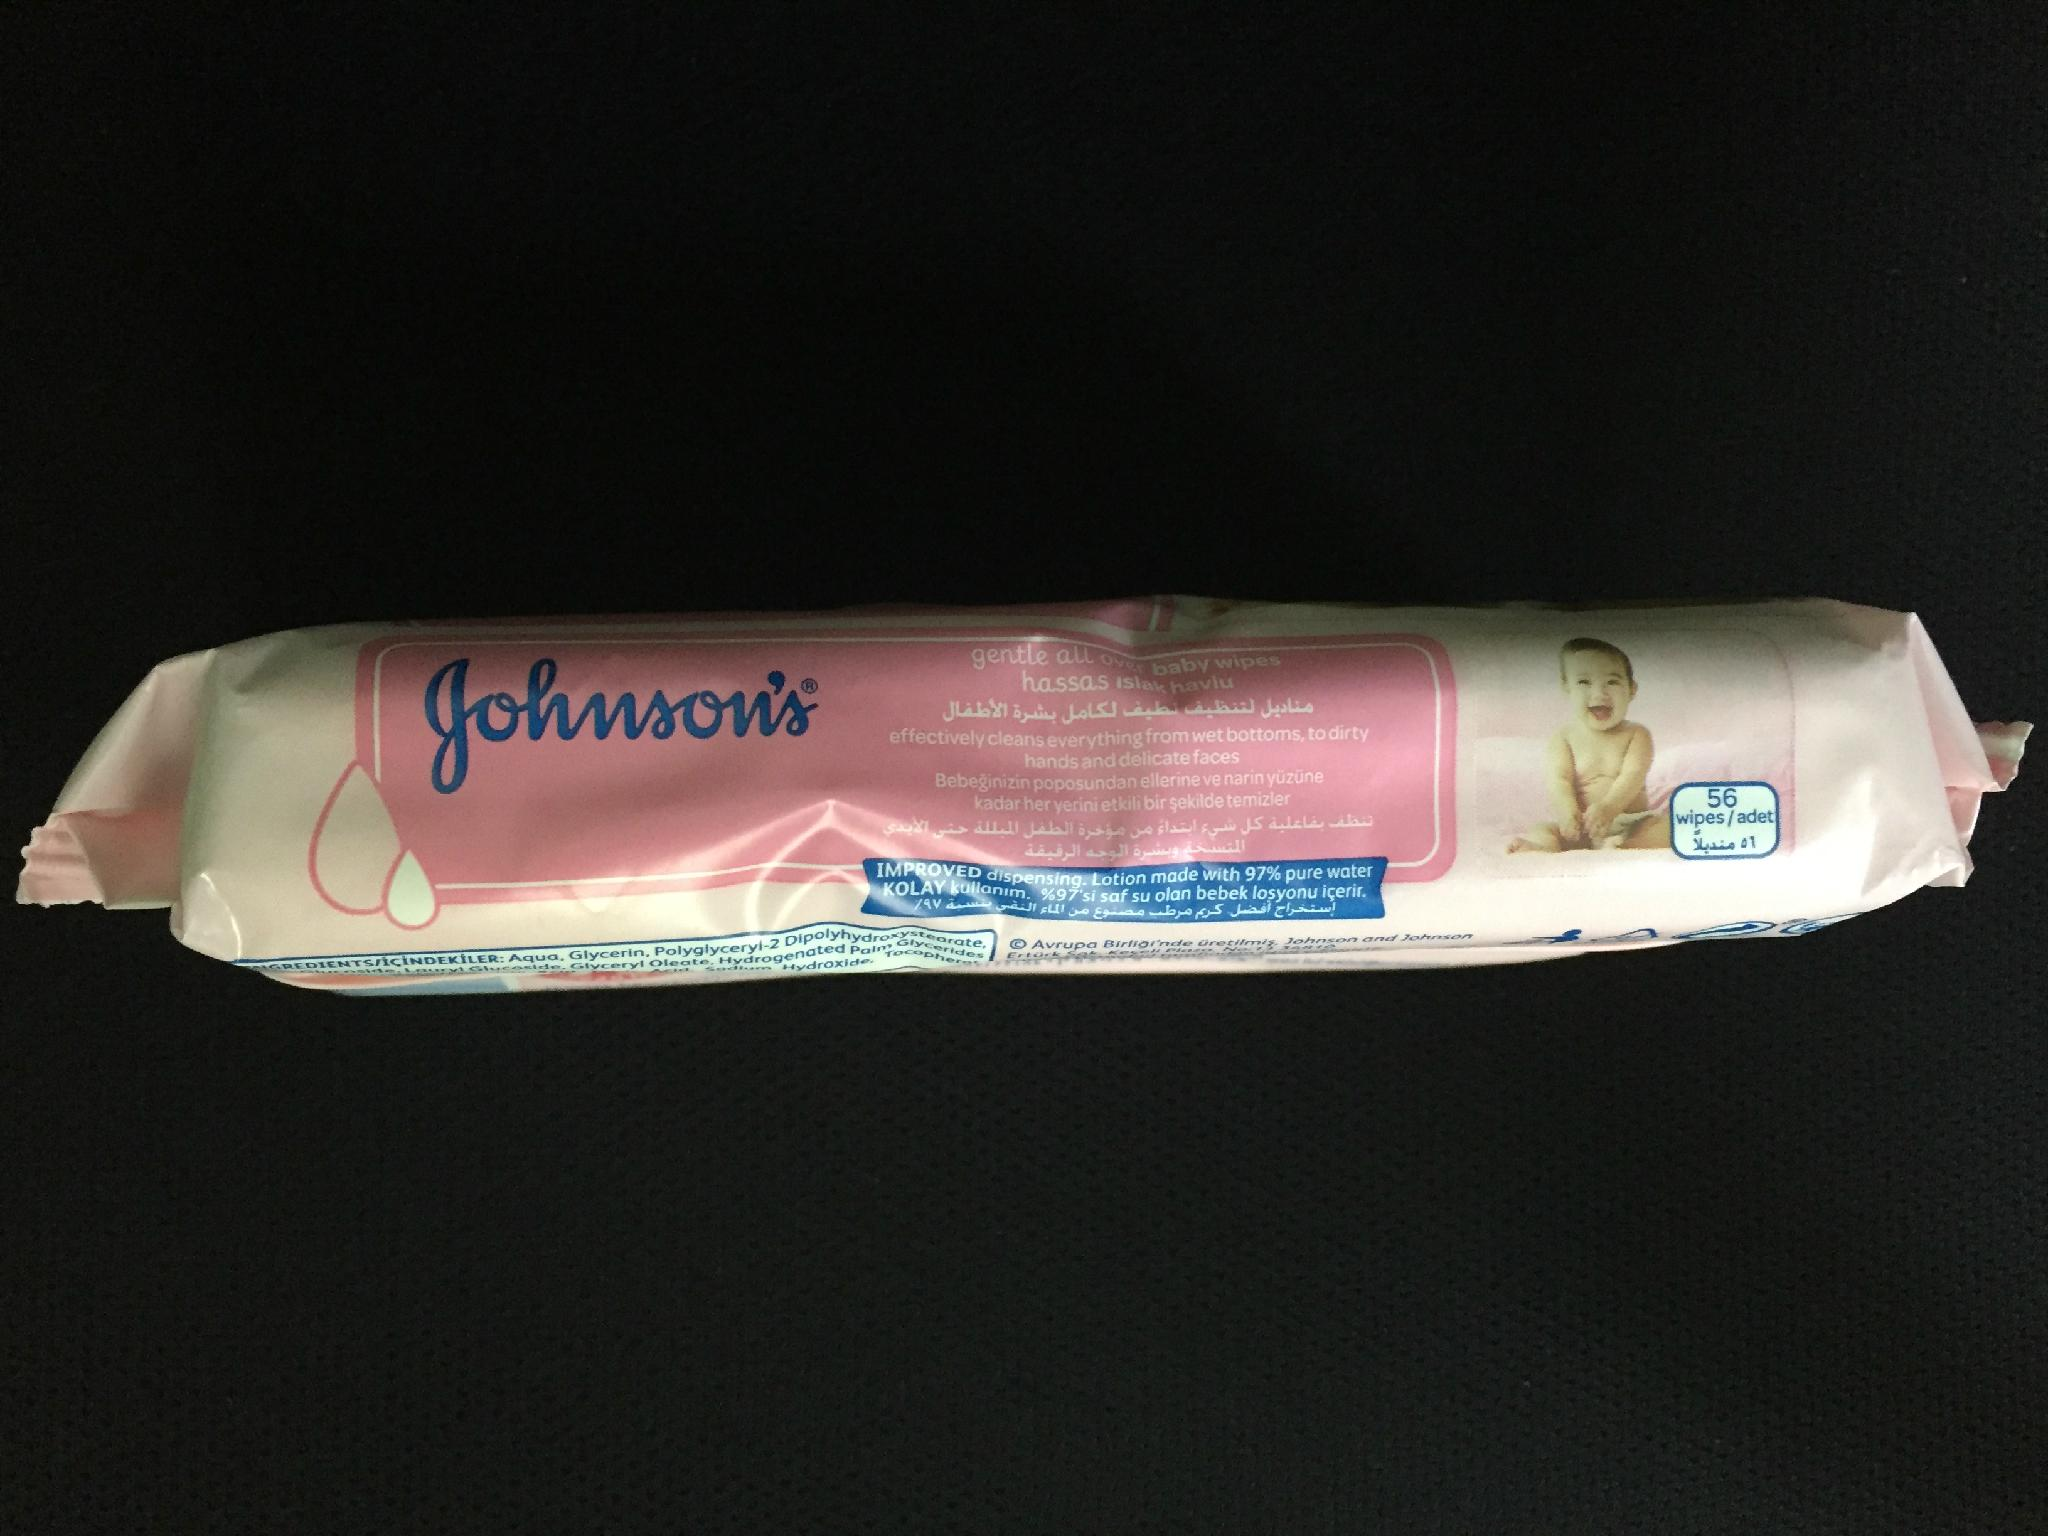 JHONSON'S GENTLE ALL OVER BABY WIPES 56'S 3